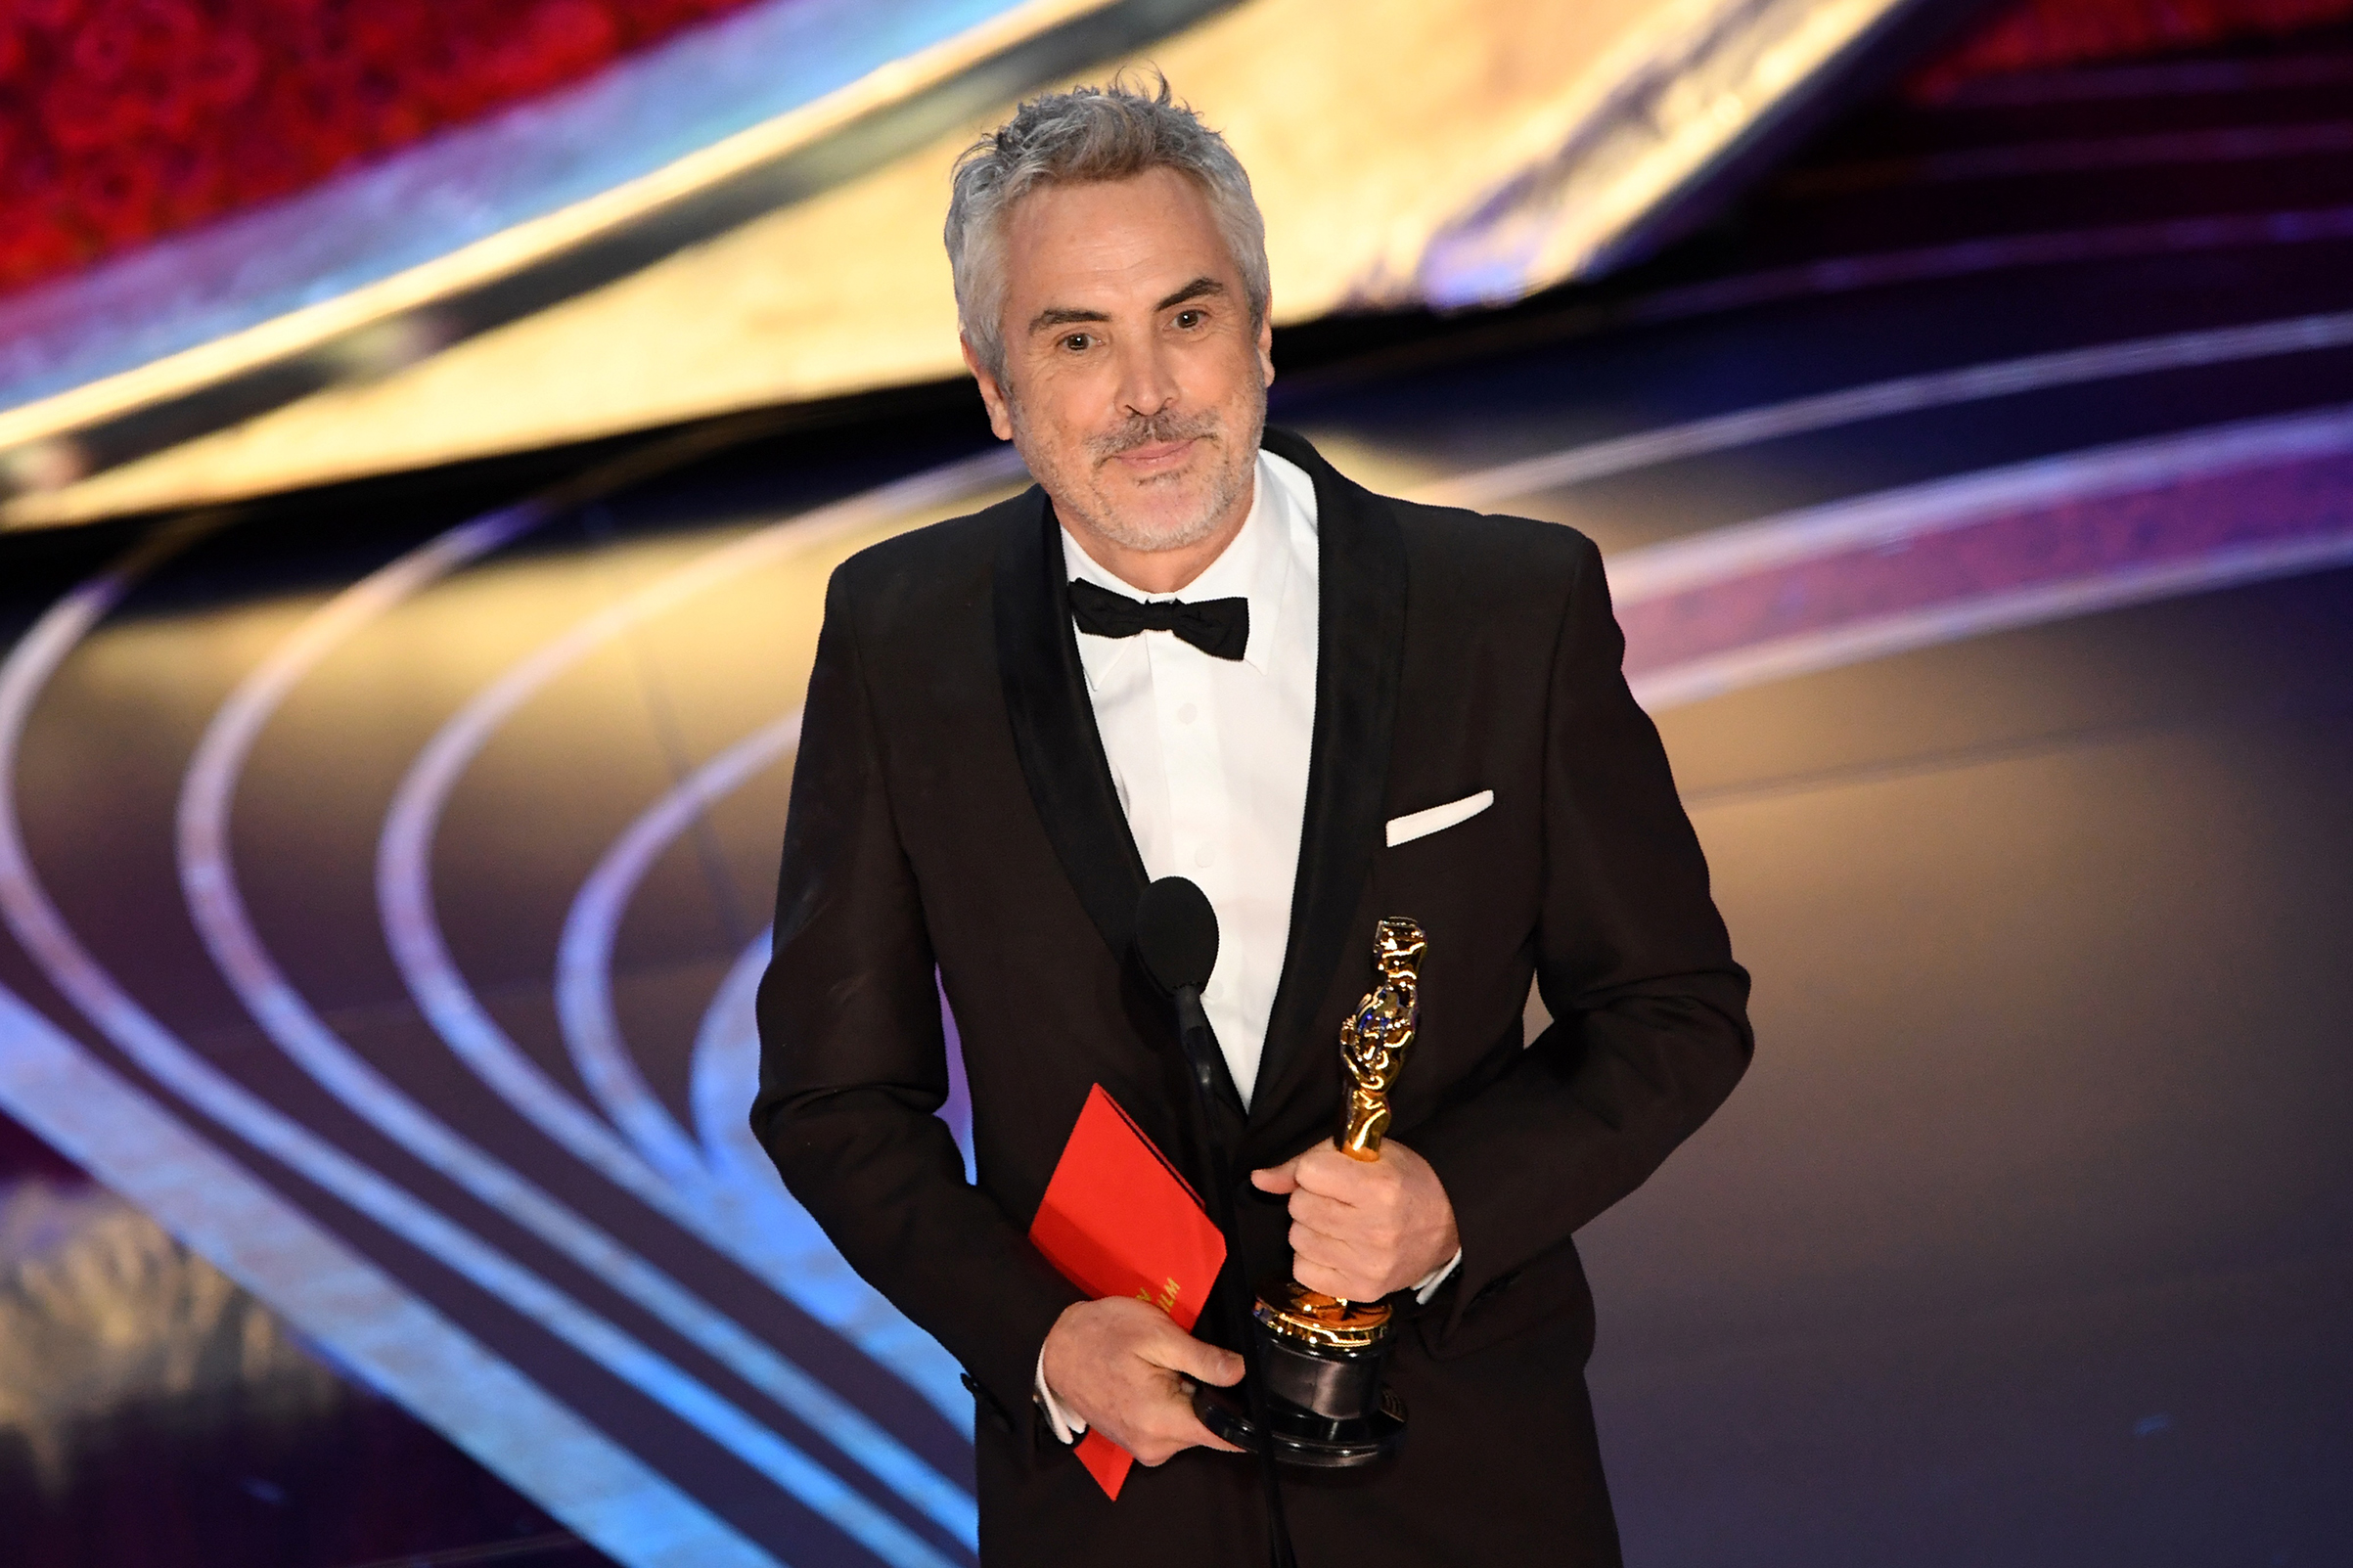 Best Foreign Language Film nominee for  Roma  Mexican director Alfonso Cuaron accepts the award for Best Foreign Language Film during the 91st Annual Academy Awards at the Dolby Theatre in Hollywood on Feb. 24, 2019.